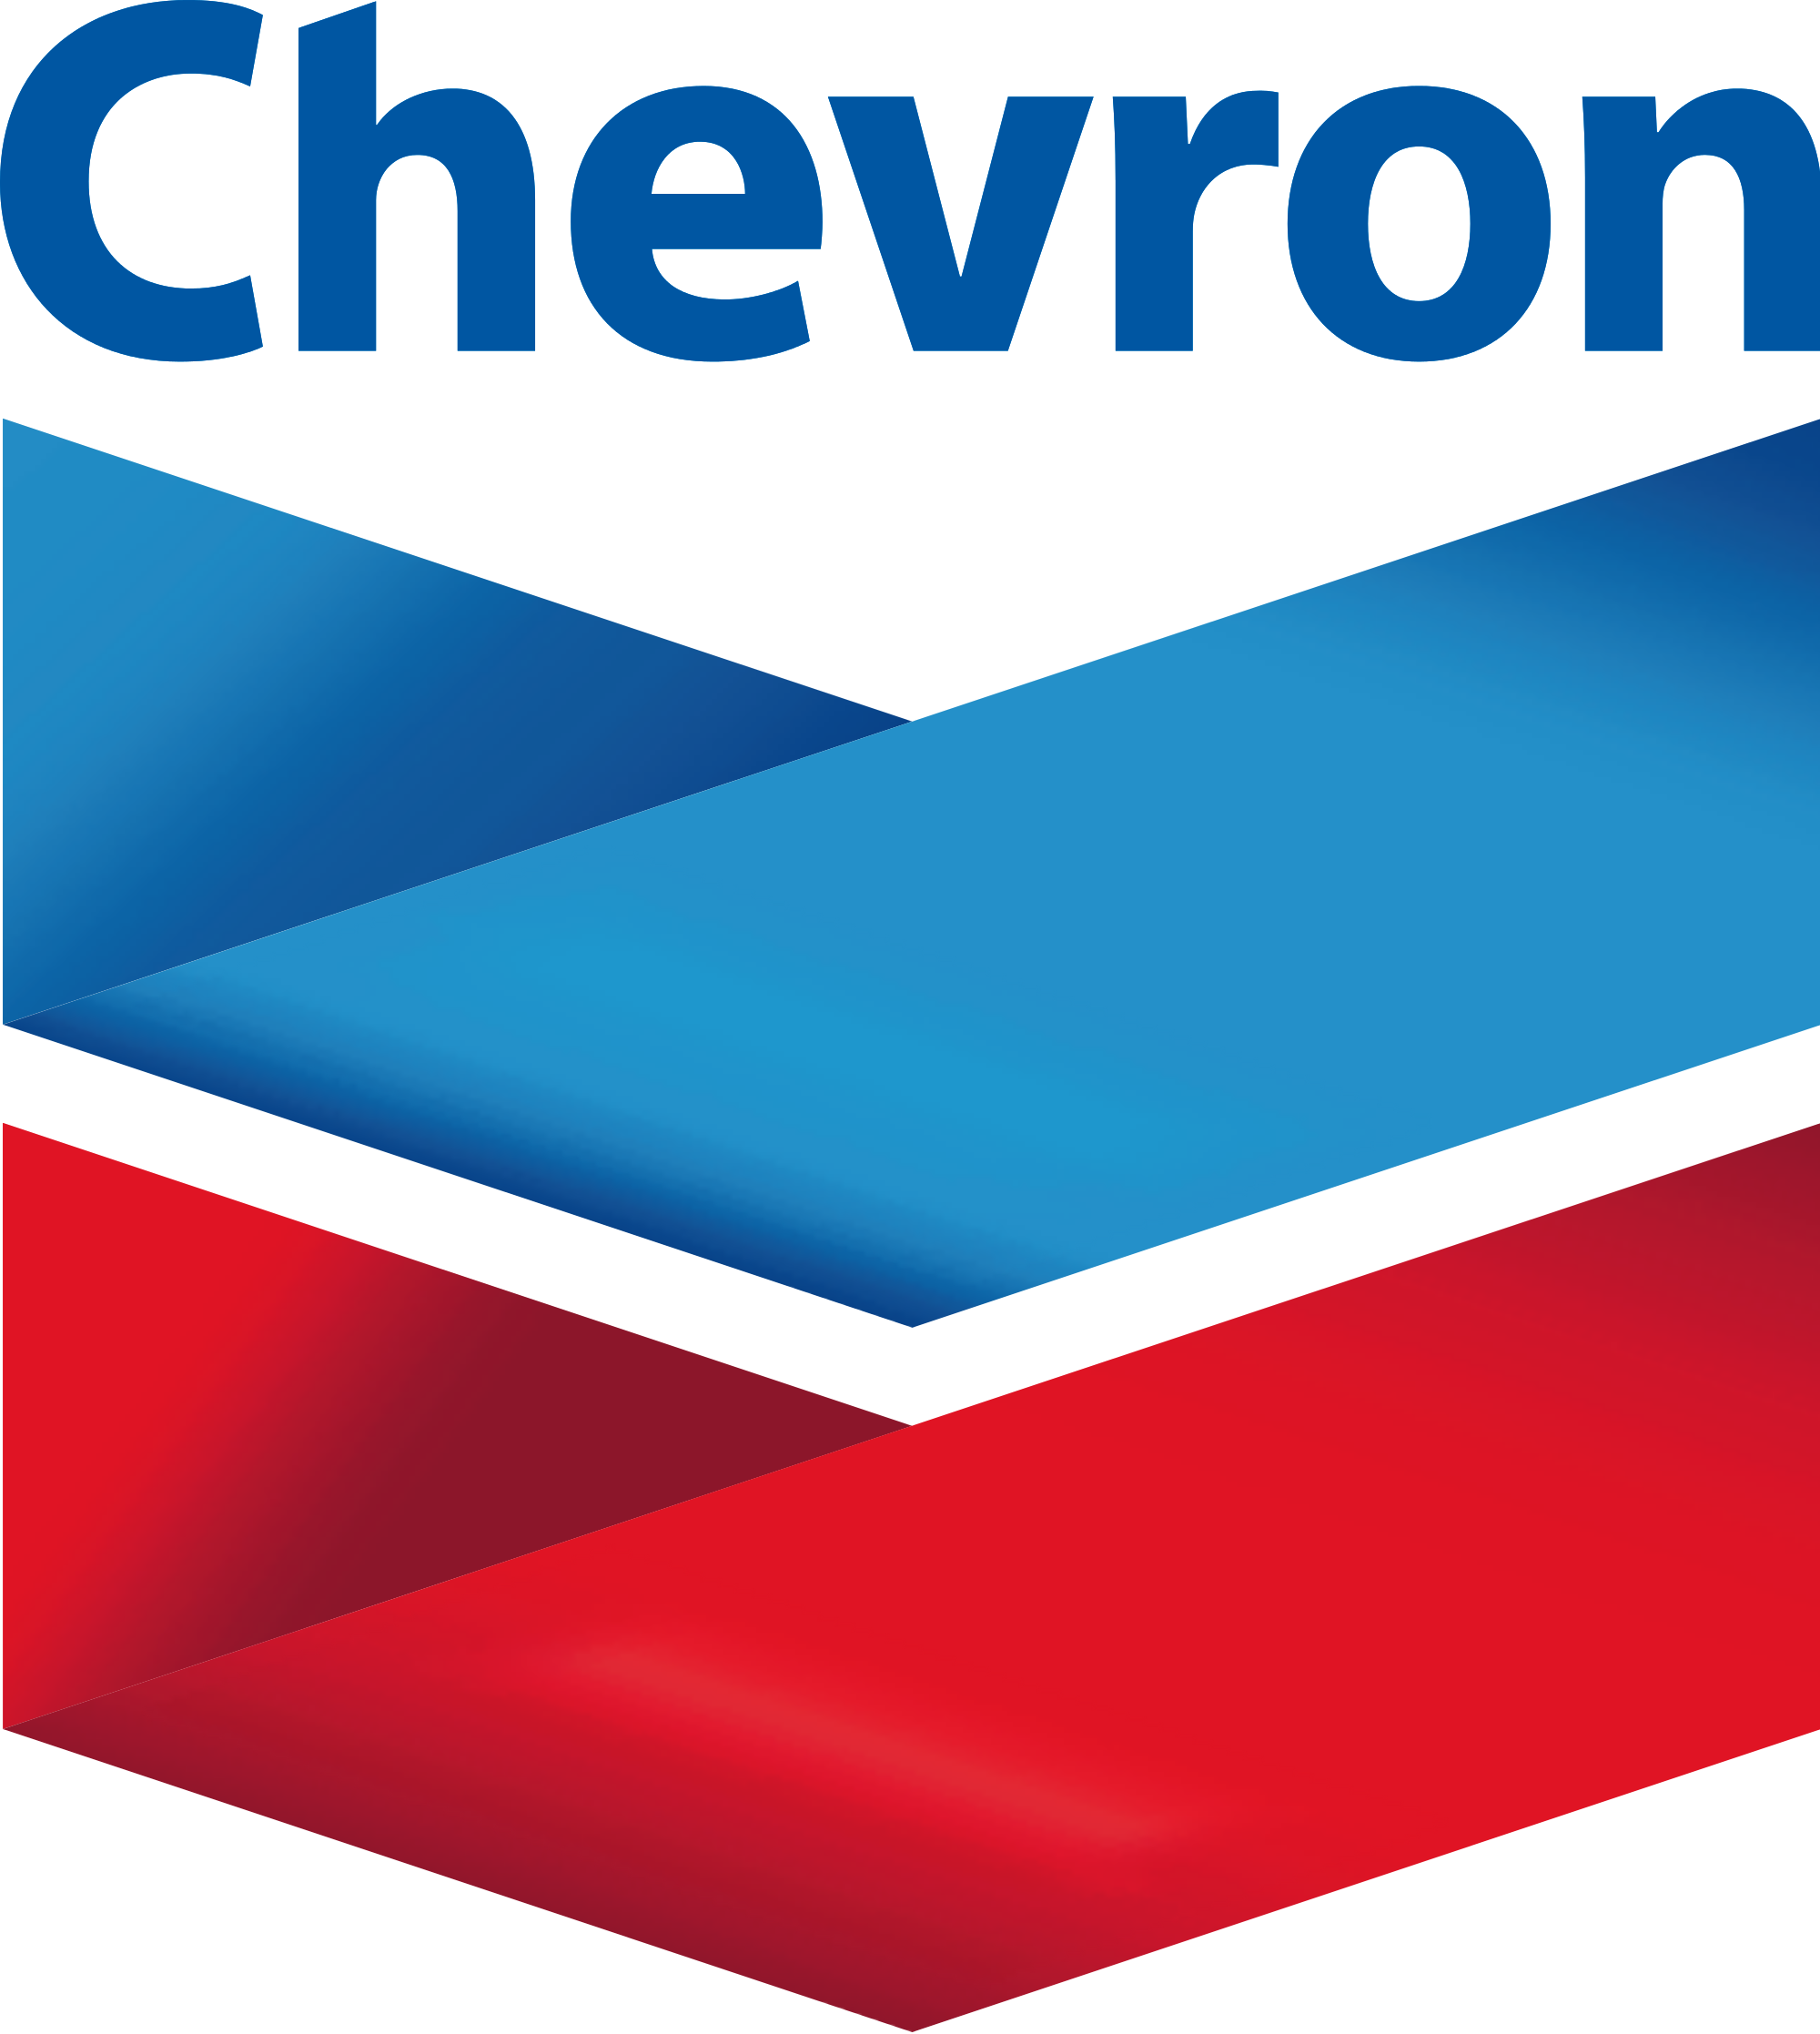 Gilbarco Veeder-Root Offers Trade-In Program as Chevron and Texaco